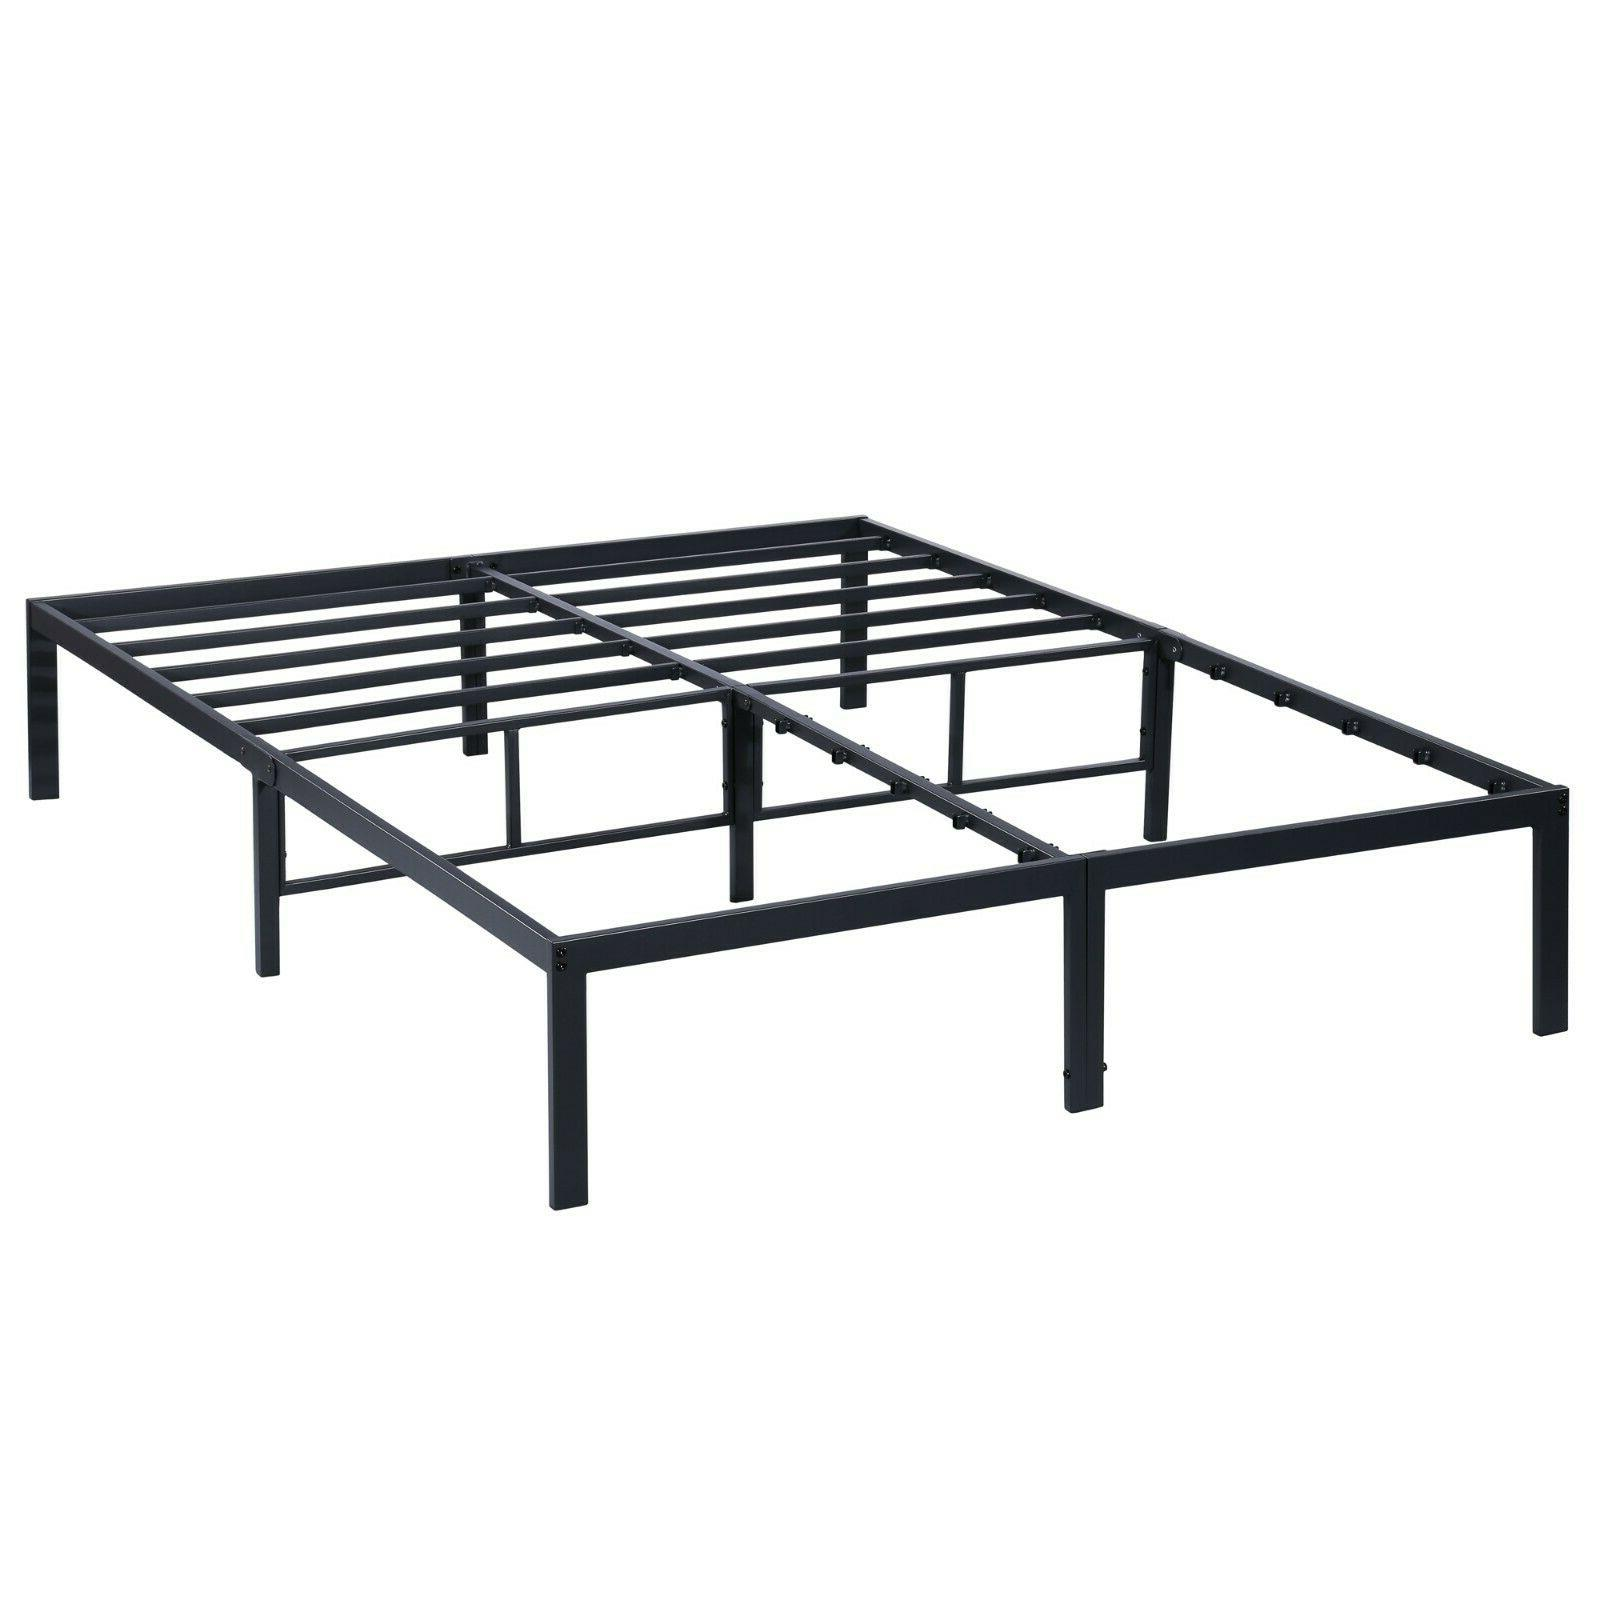 SLEEPLACE Dura Metal Steel Slate Bed Frame - S3000   14BF08